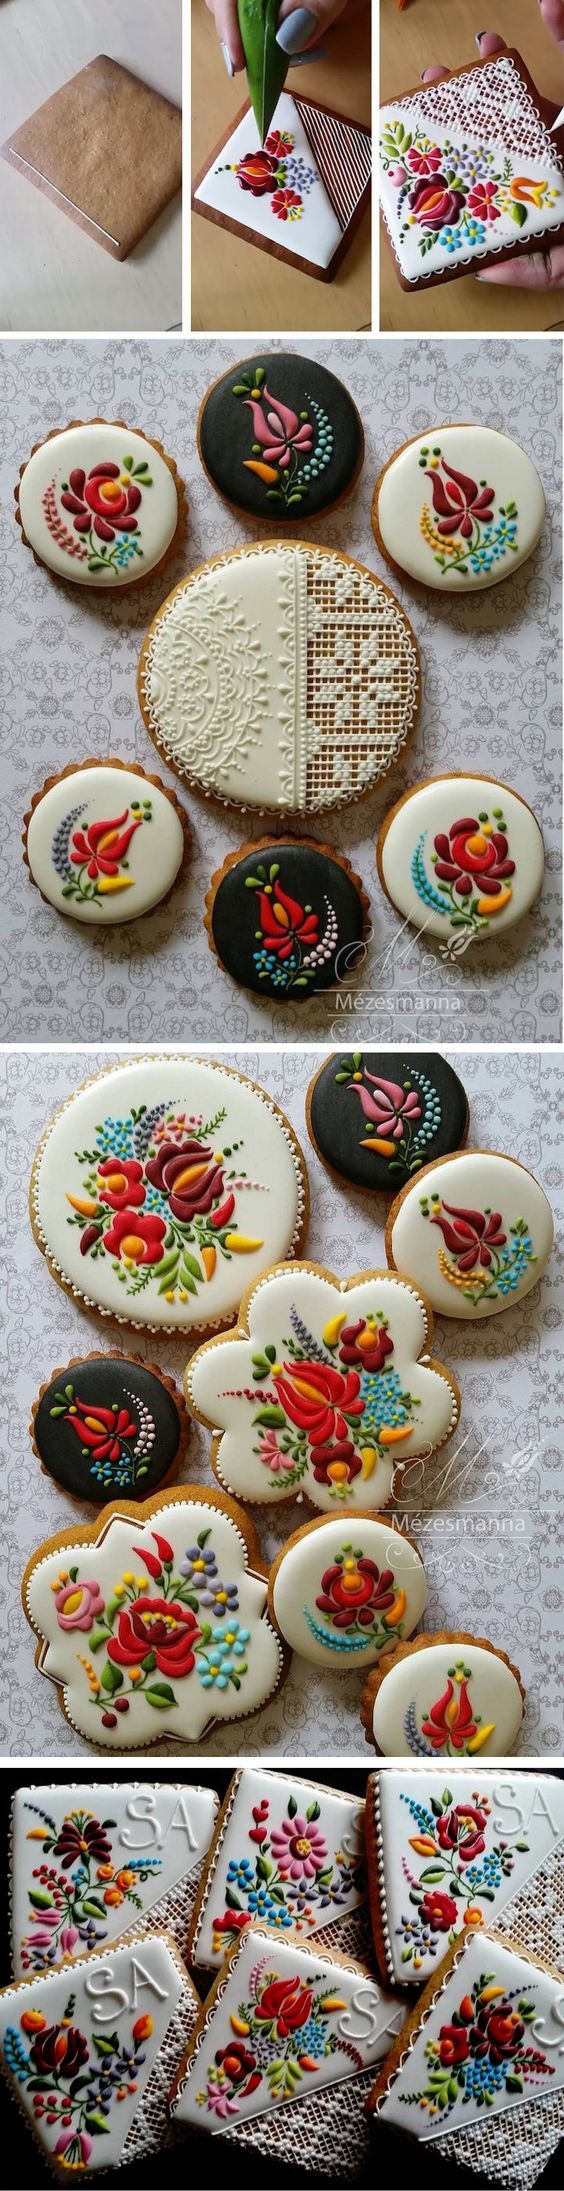 So inspired by these beautifully embroidered cookies! Mézesmanna totally takes cookie decorating to another level.: